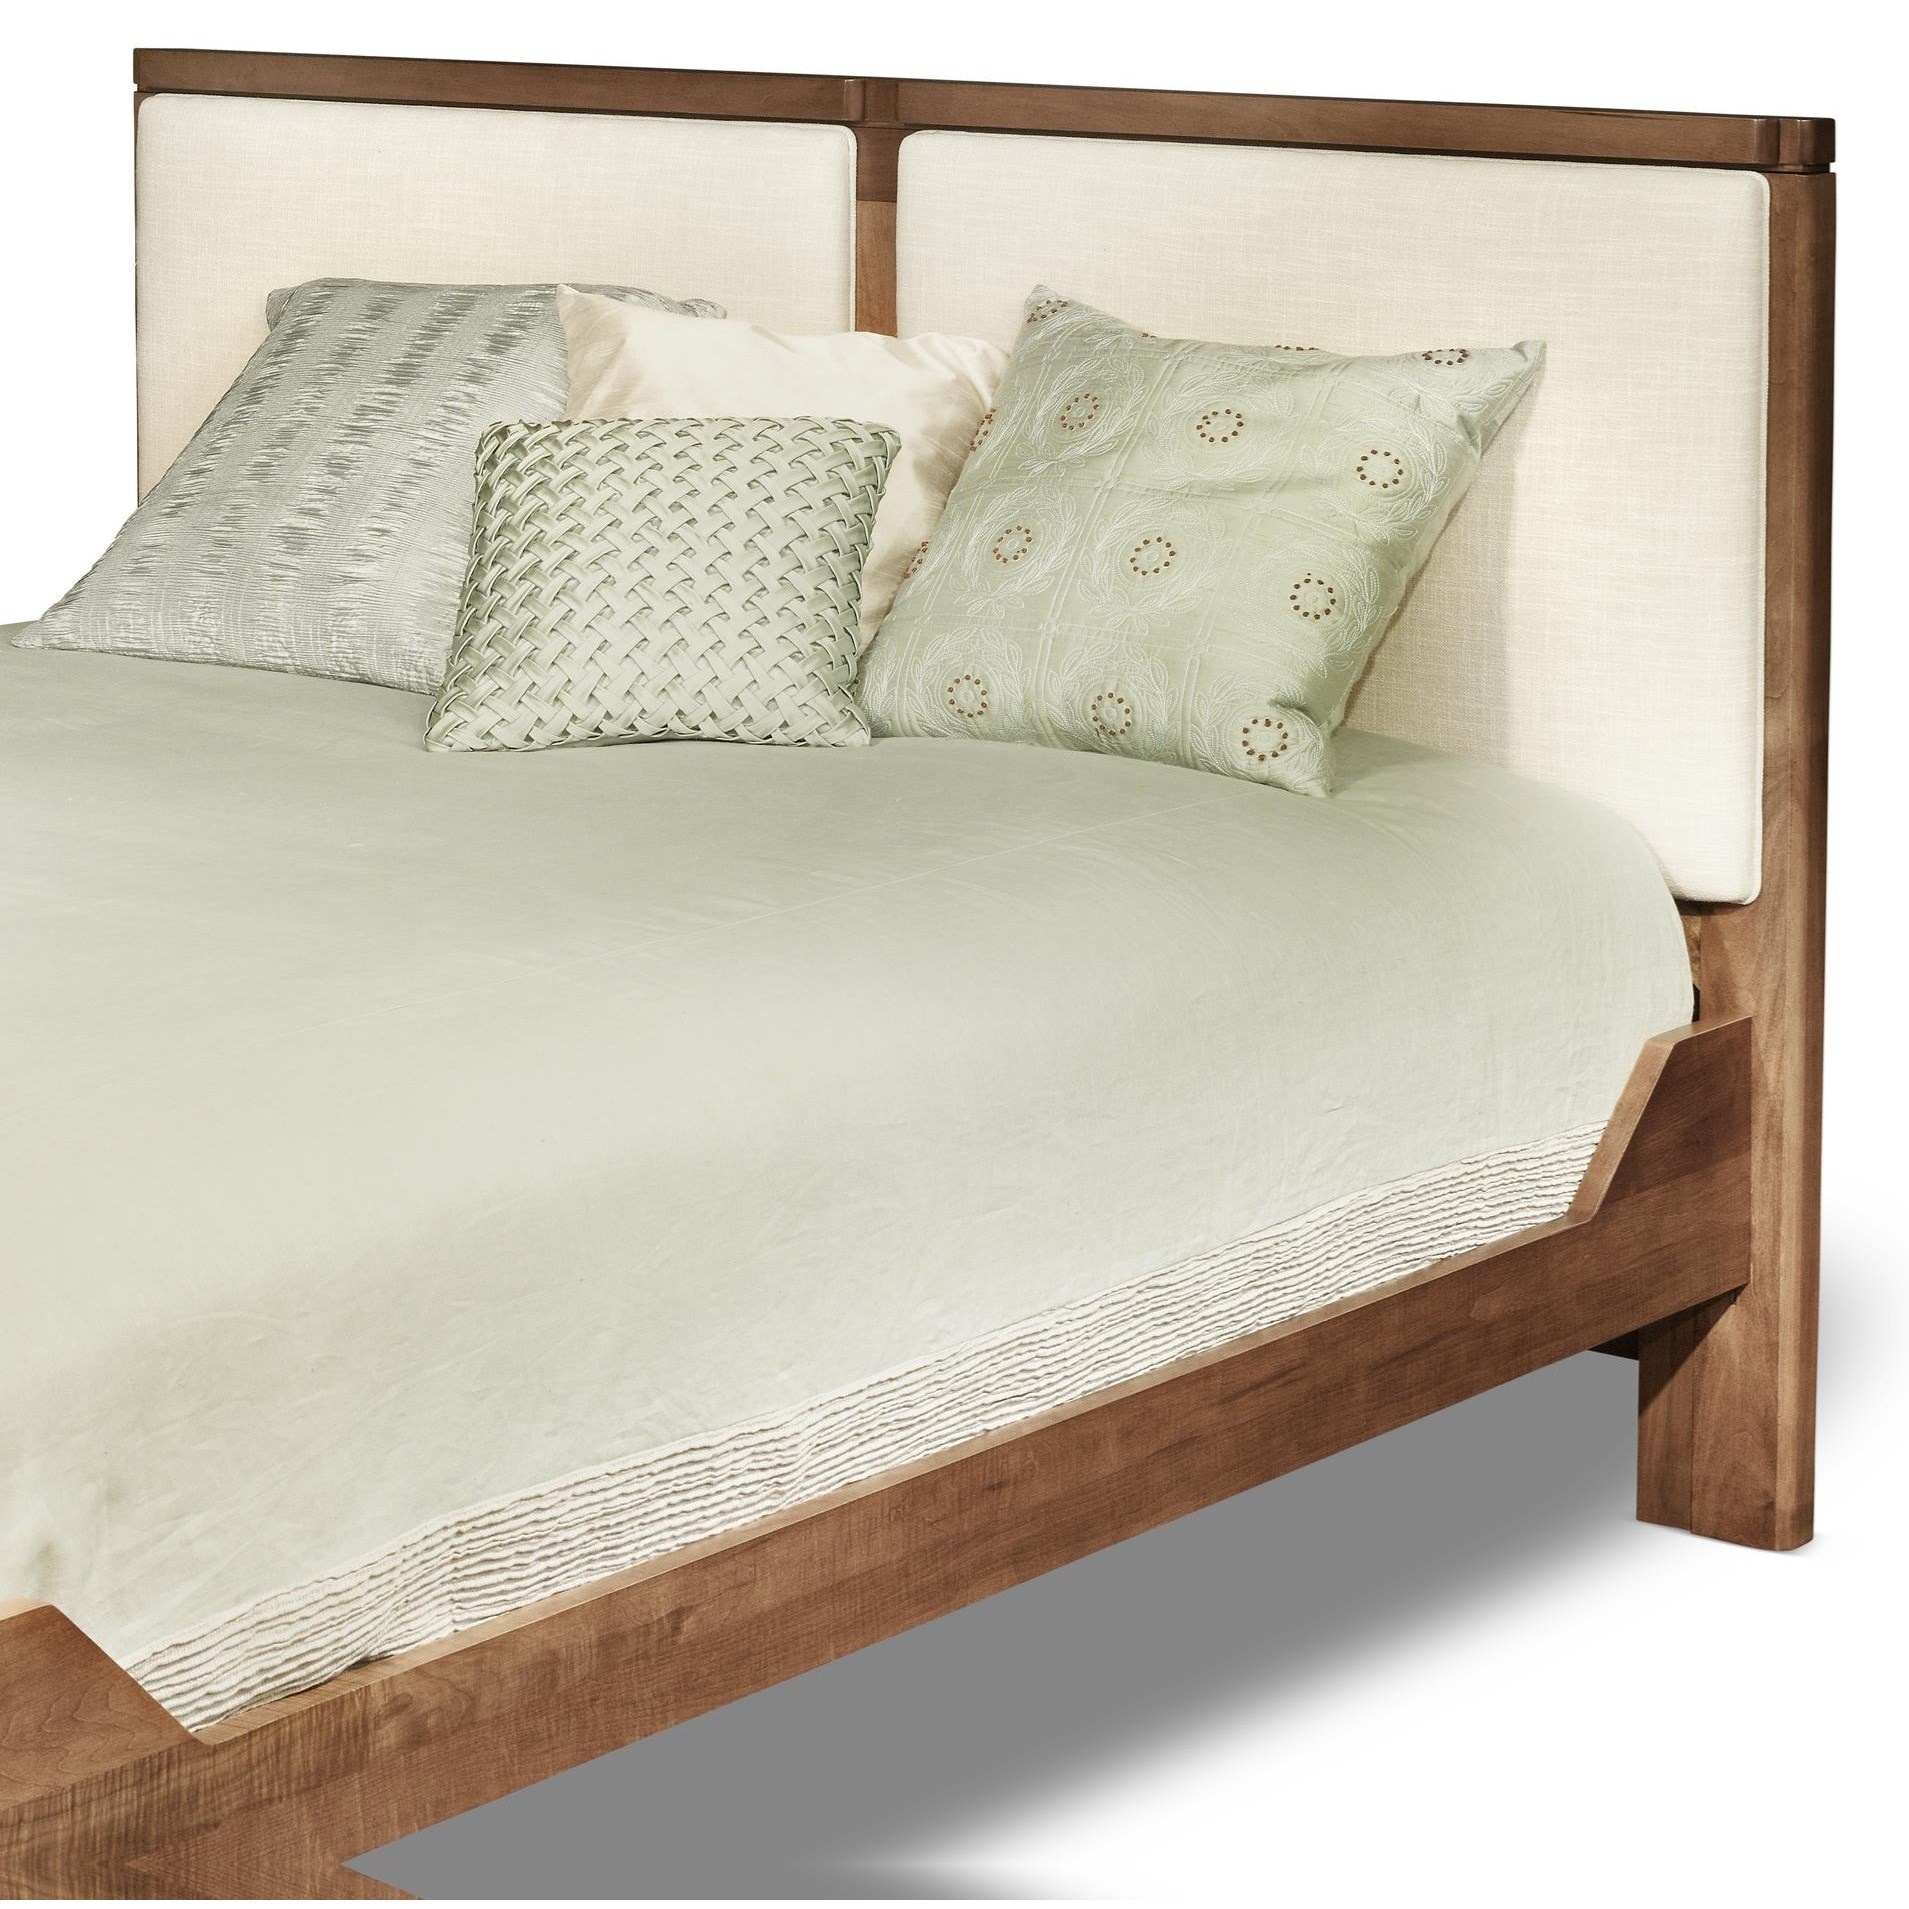 Beds Queen Upholstered Headboard by perfectbalance by Durham Furniture at Reid's Furniture